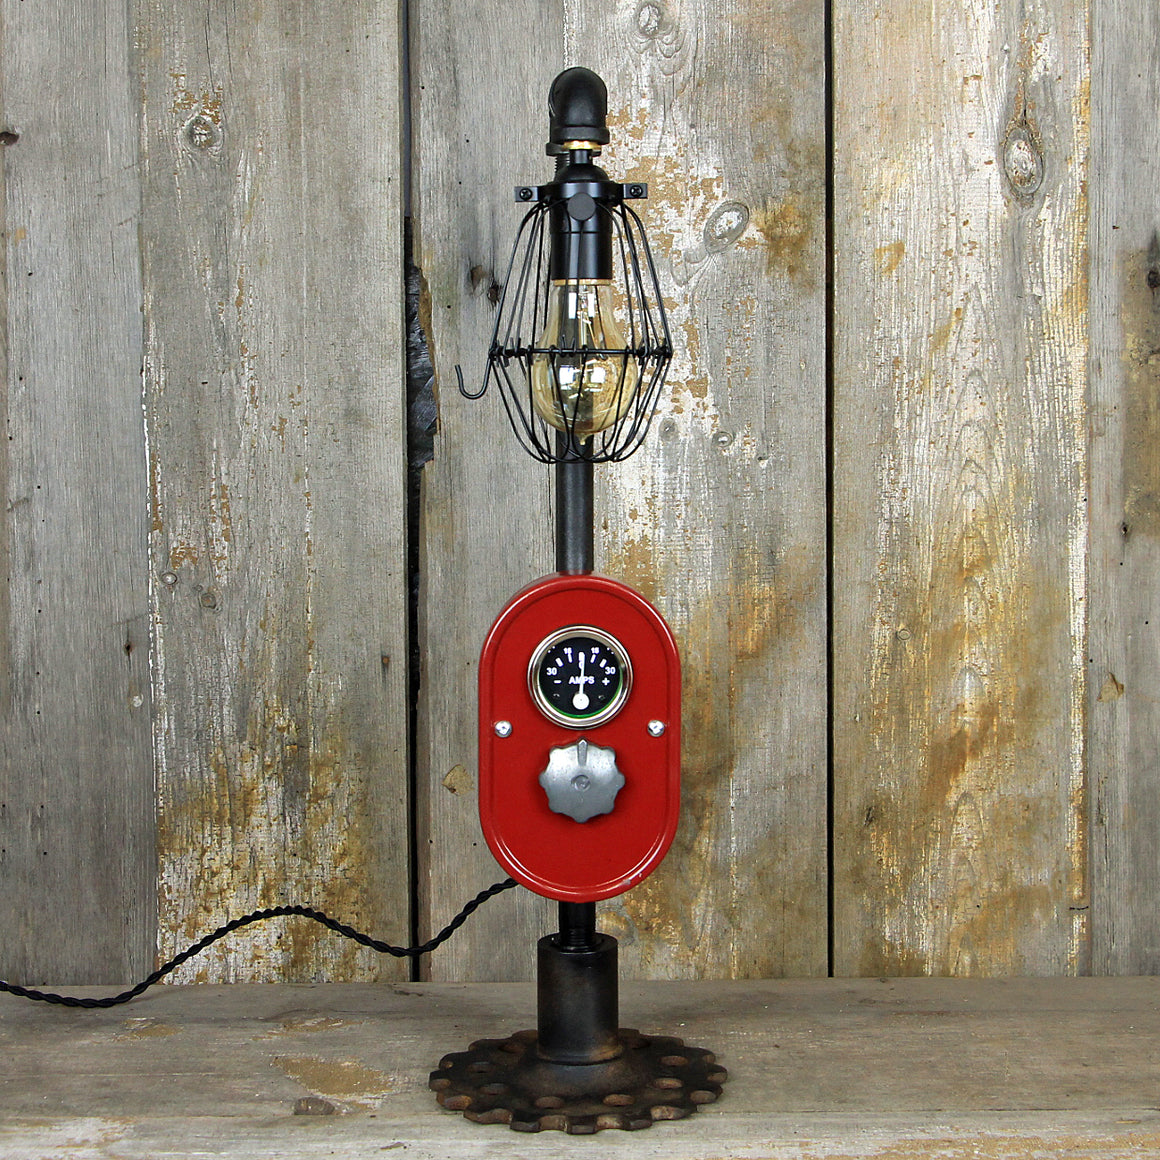 Steampunk Industrial Table Lamp with a Farmall Tractor dash #293 - The Lighting Works